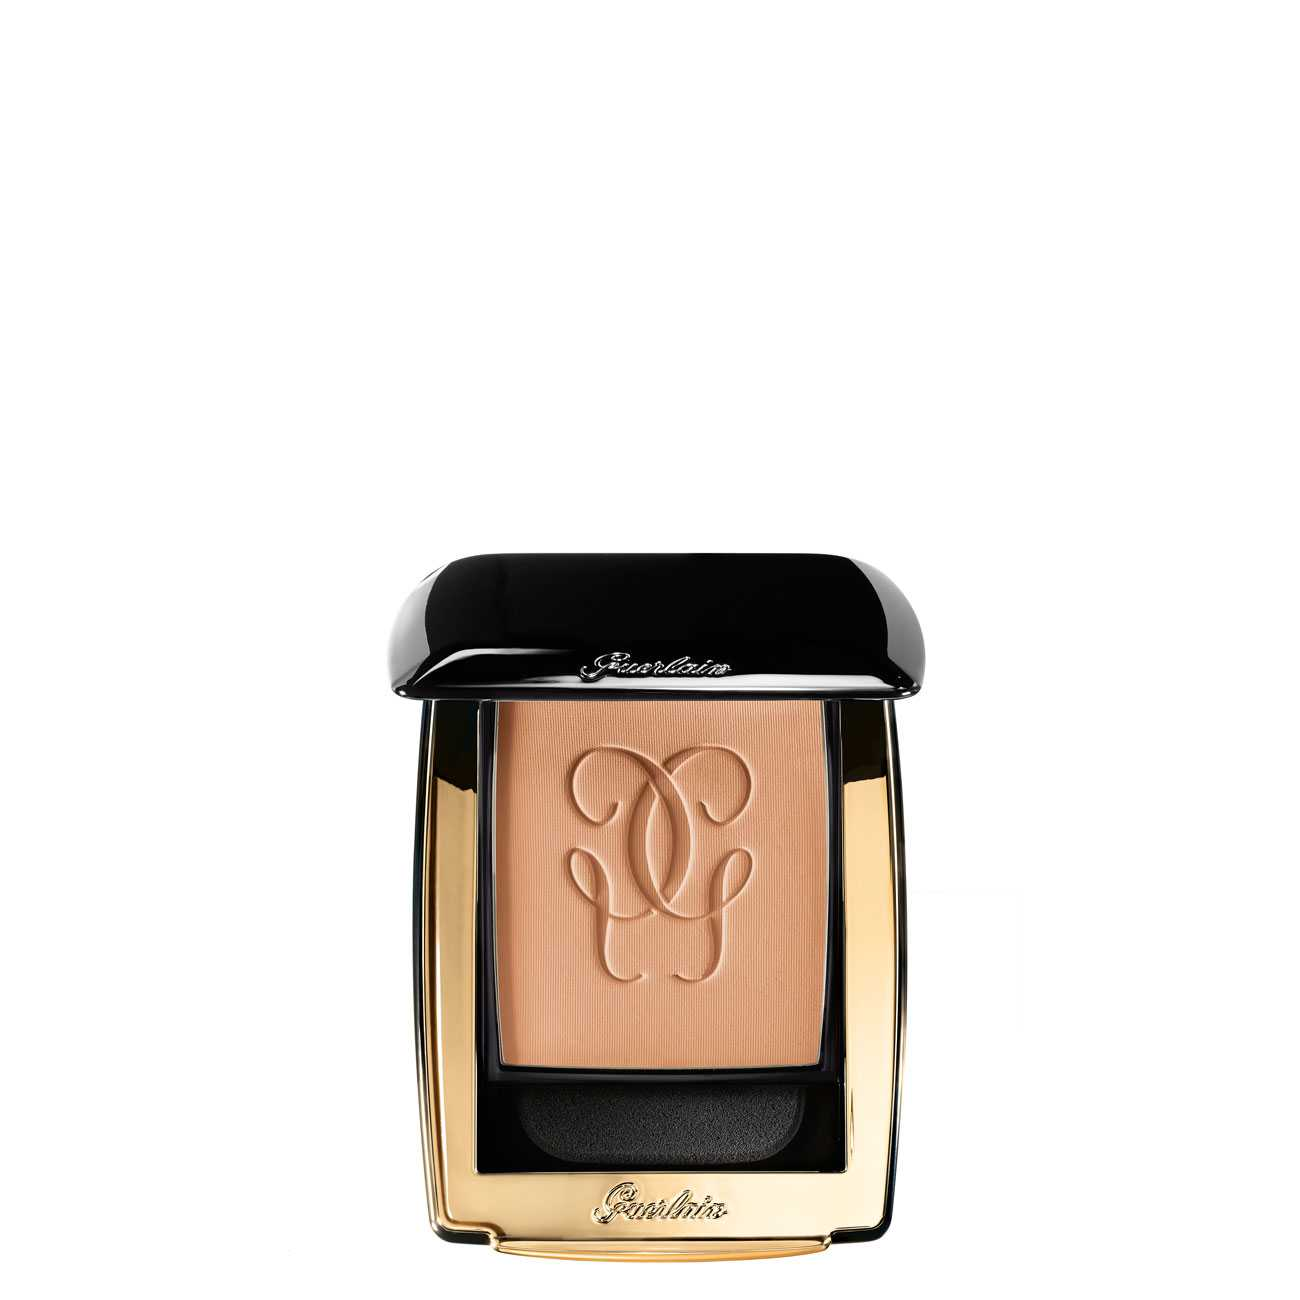 PARURE GOLD COMPACT FOUNDATION 10 G Beige Natural 3